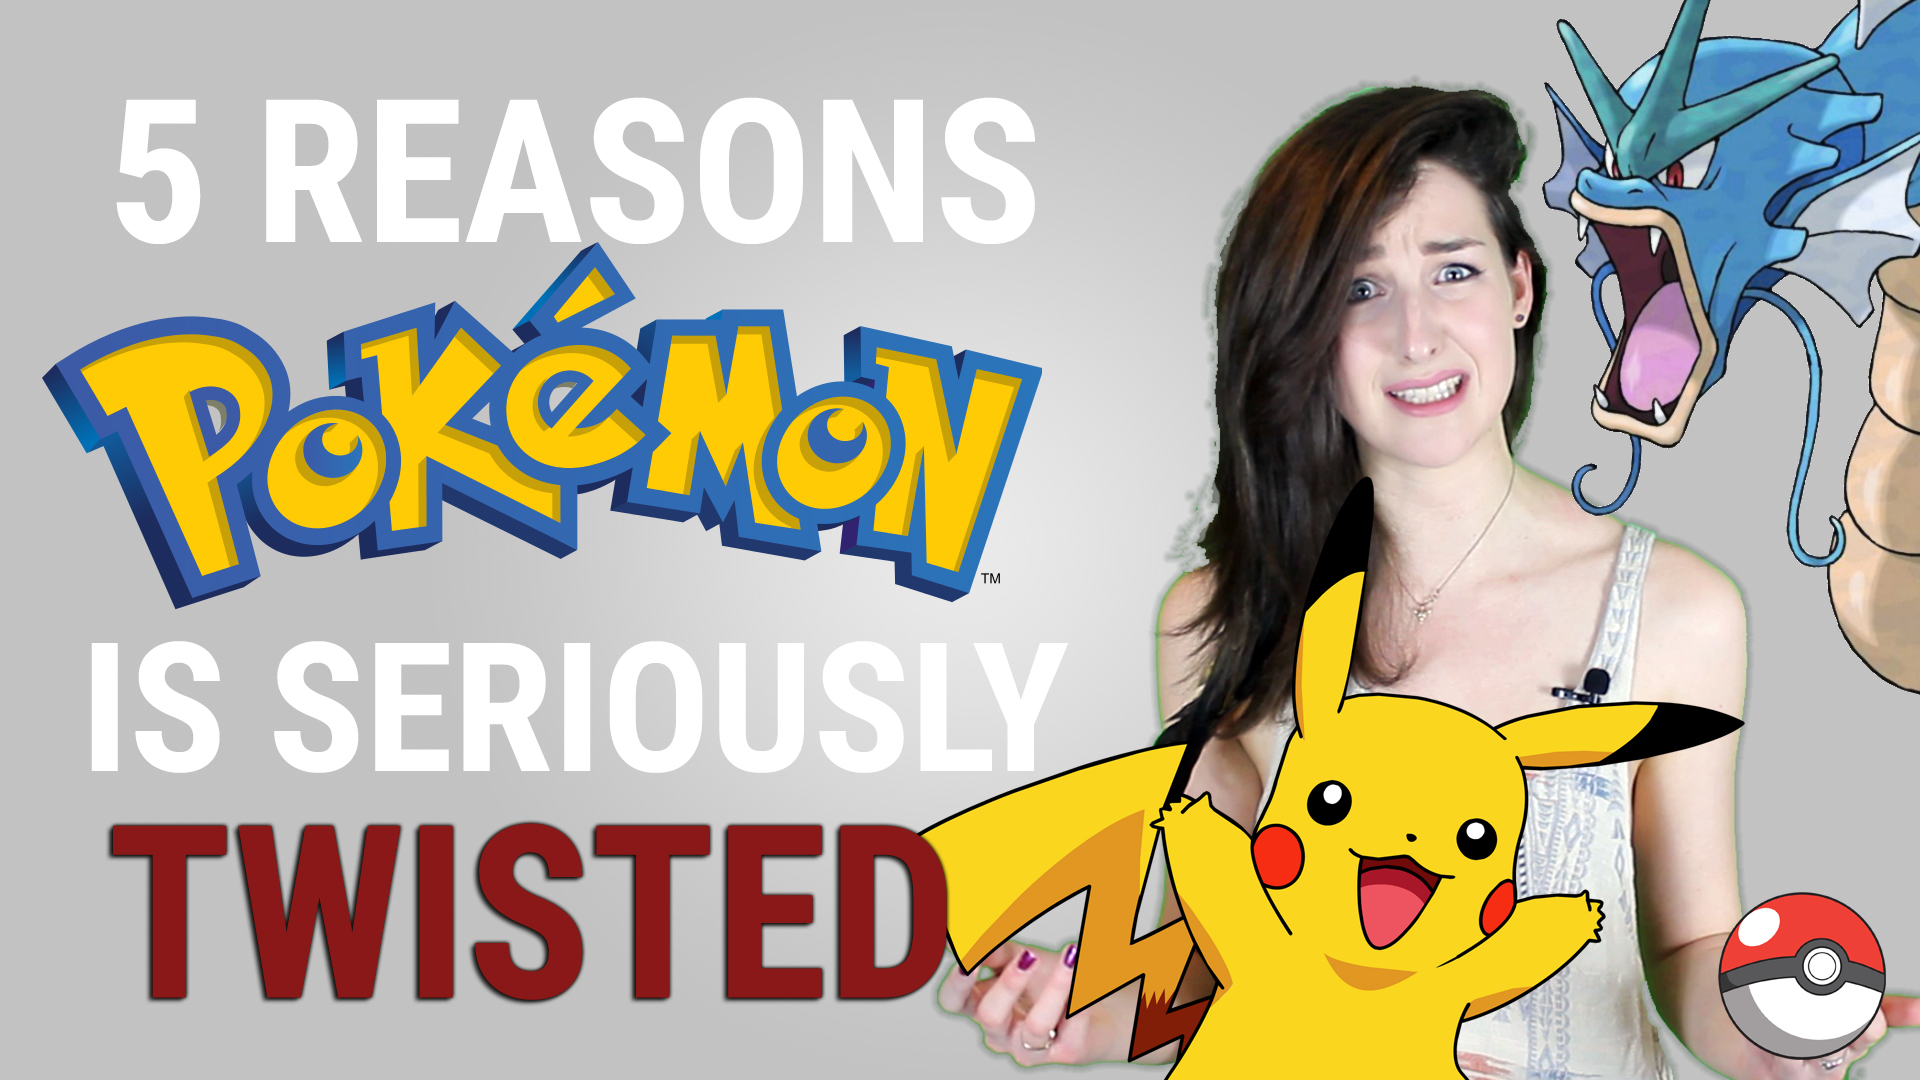 5 reasons Pokémon is seriously twisted